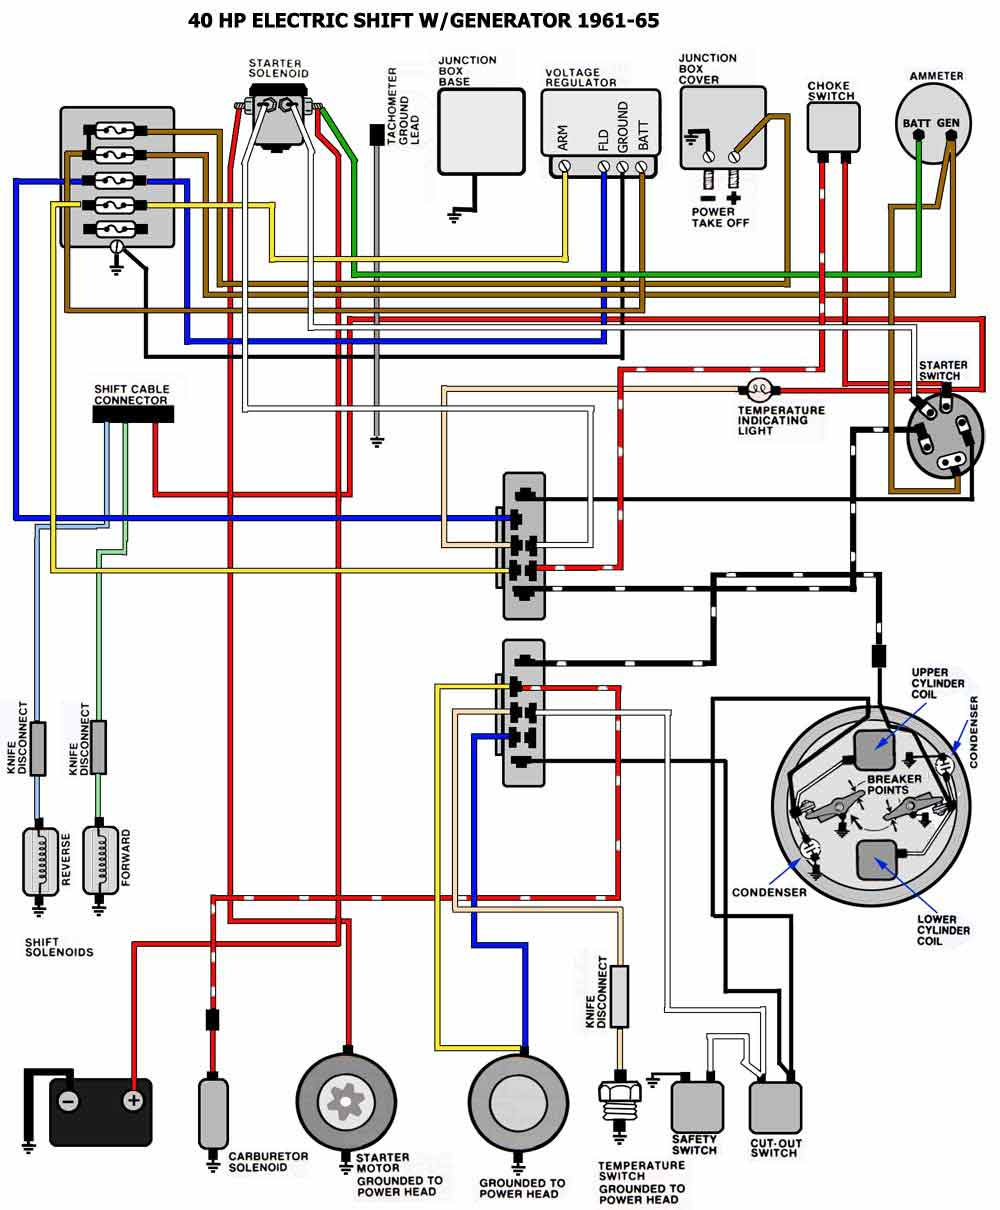 Omc Boat Wiring Diagram | Wiring Diagram 2019